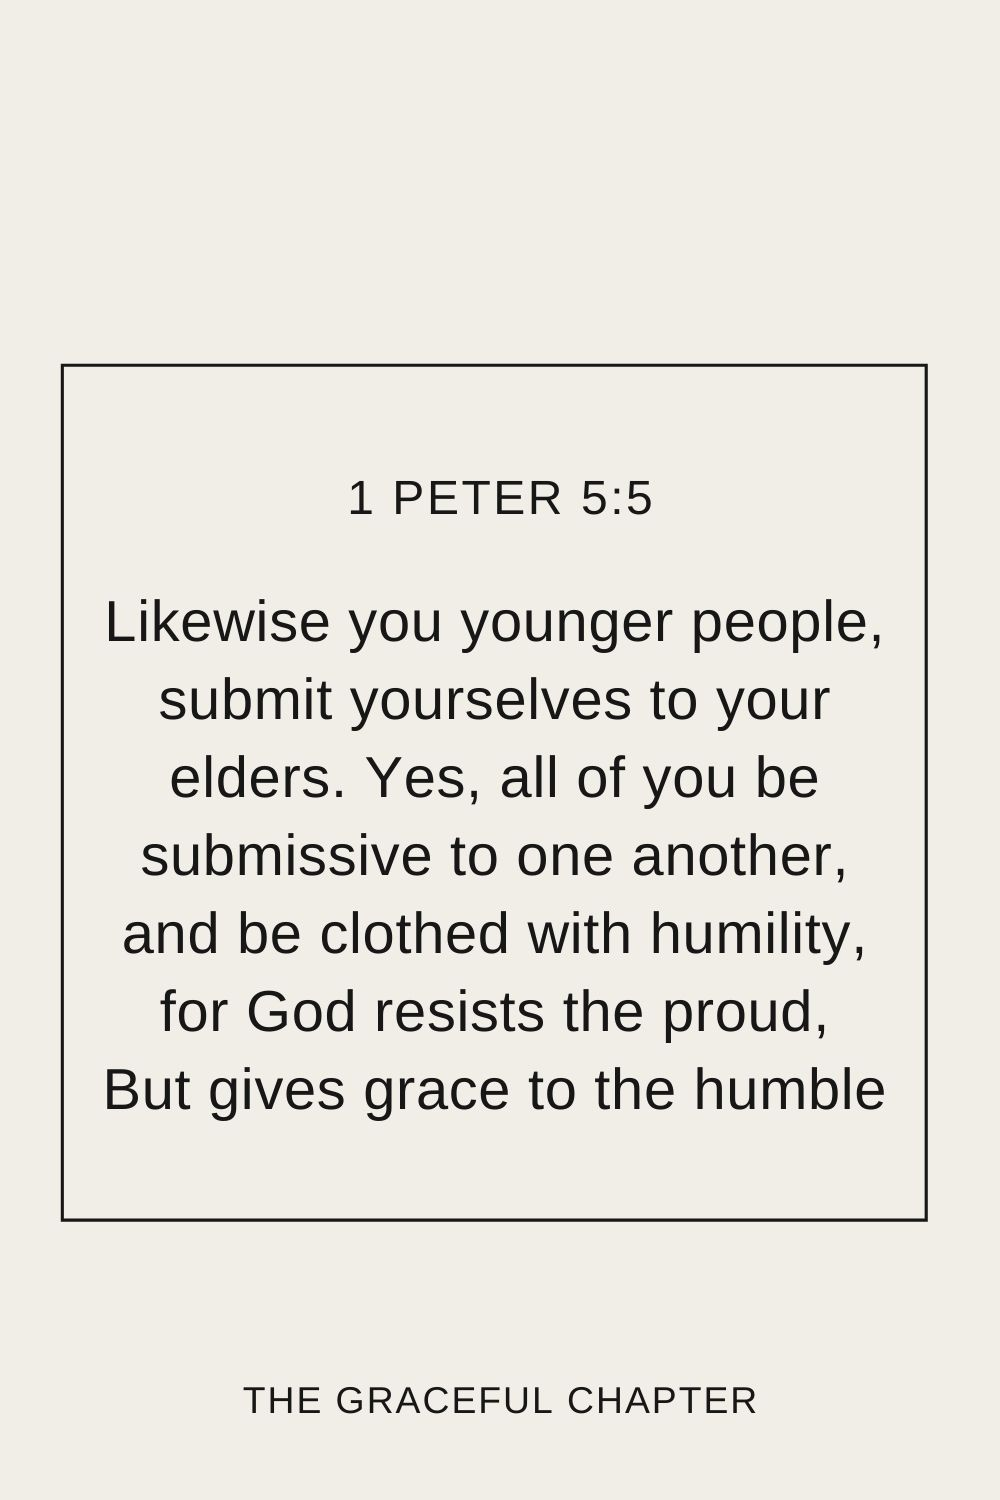 Likewise you younger people, submit yourselves to your elders. Yes, all of you be submissive to one another, and be clothed with humility, for God resists the proud, But gives grace to the humble 1 Peter 5:5